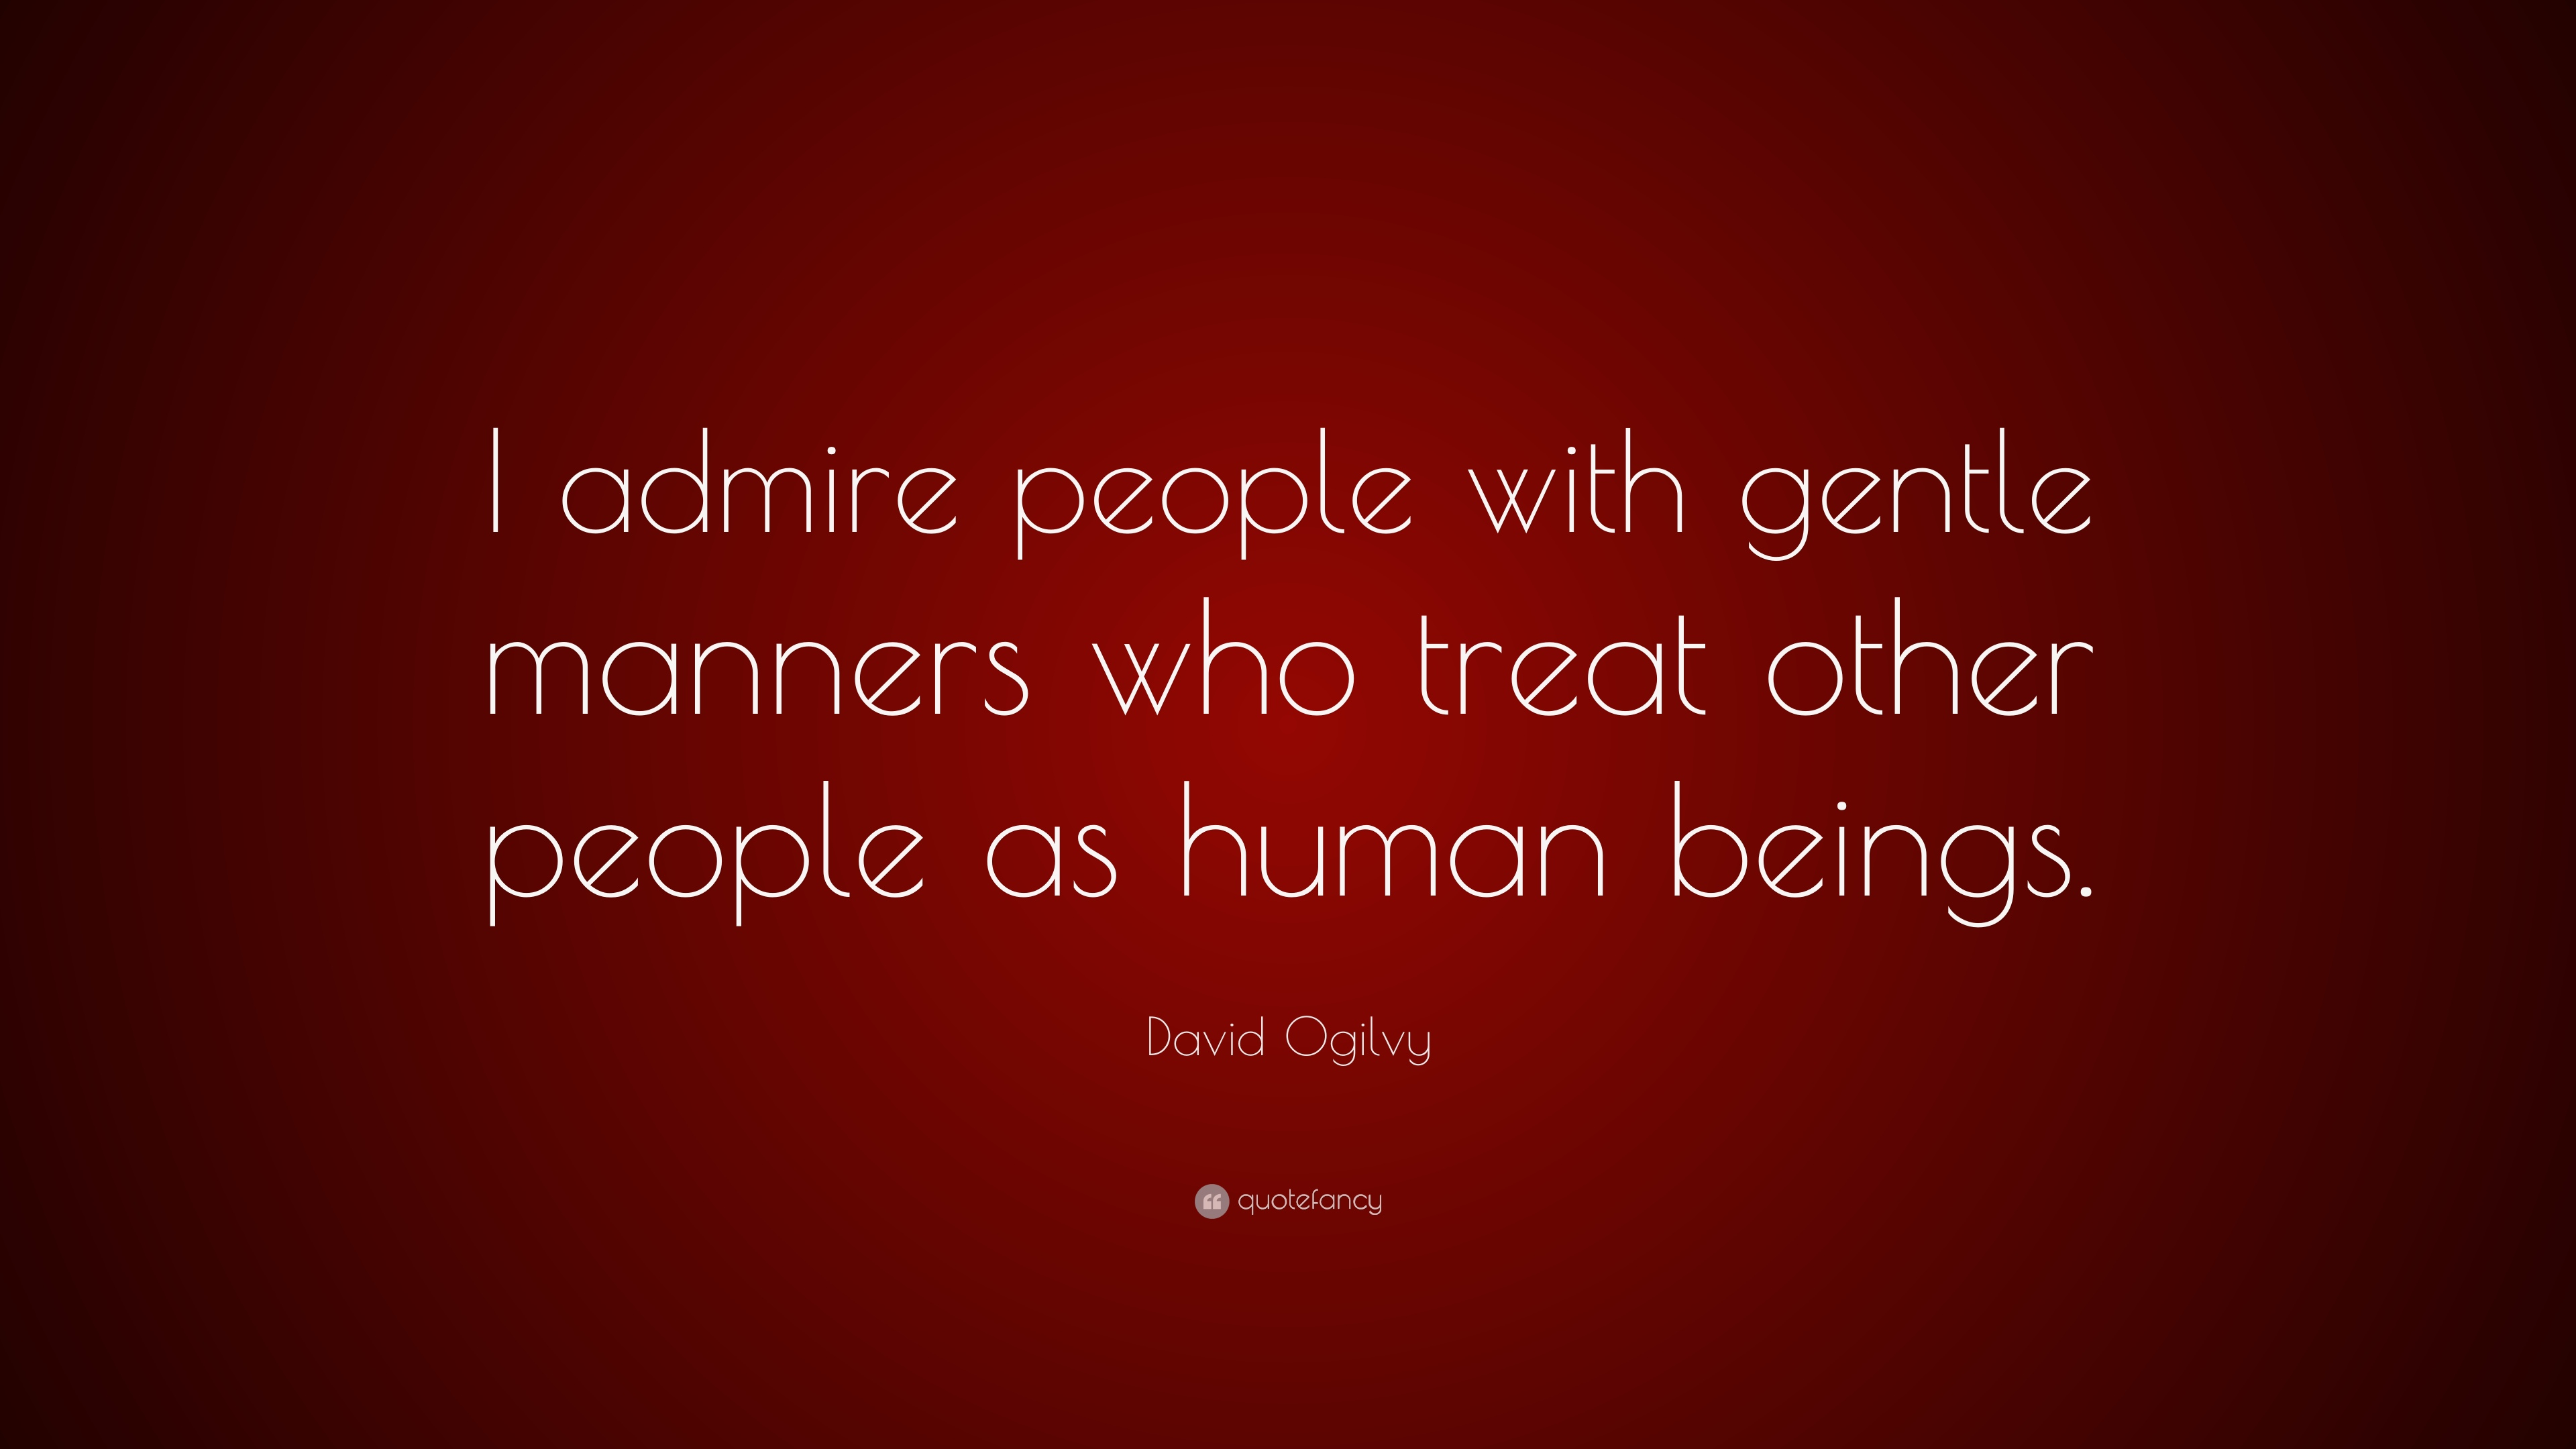 David Ogilvy Quote I Admire People With Gentle Manners Who Treat Other People As Human Beings